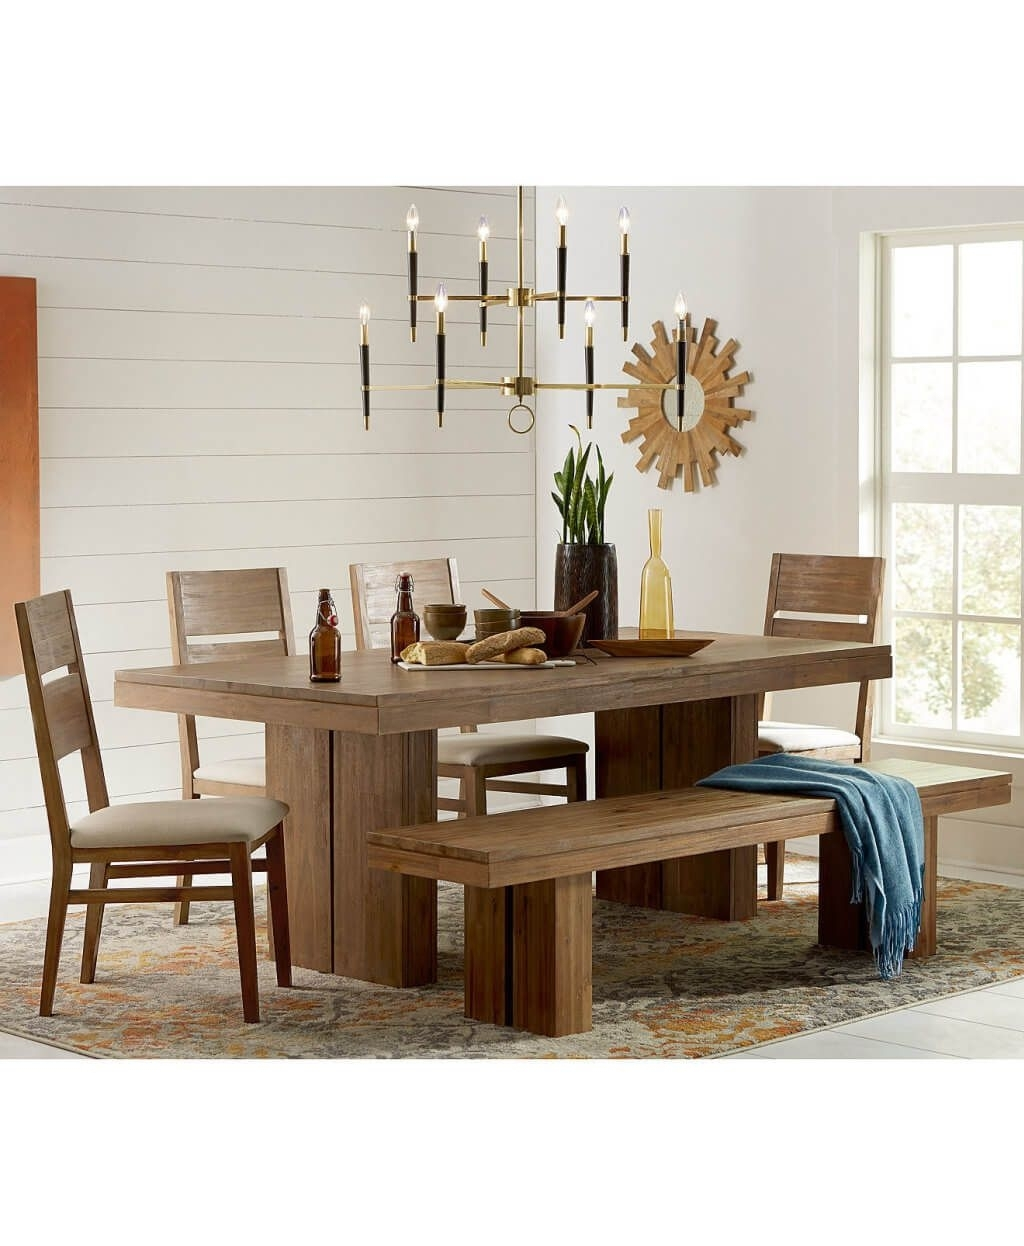 Living Room Macys Tables Macy Bar Height Kitchen Round Dining Table In Most Recently Released Macie Round Dining Tables (Image 10 of 20)